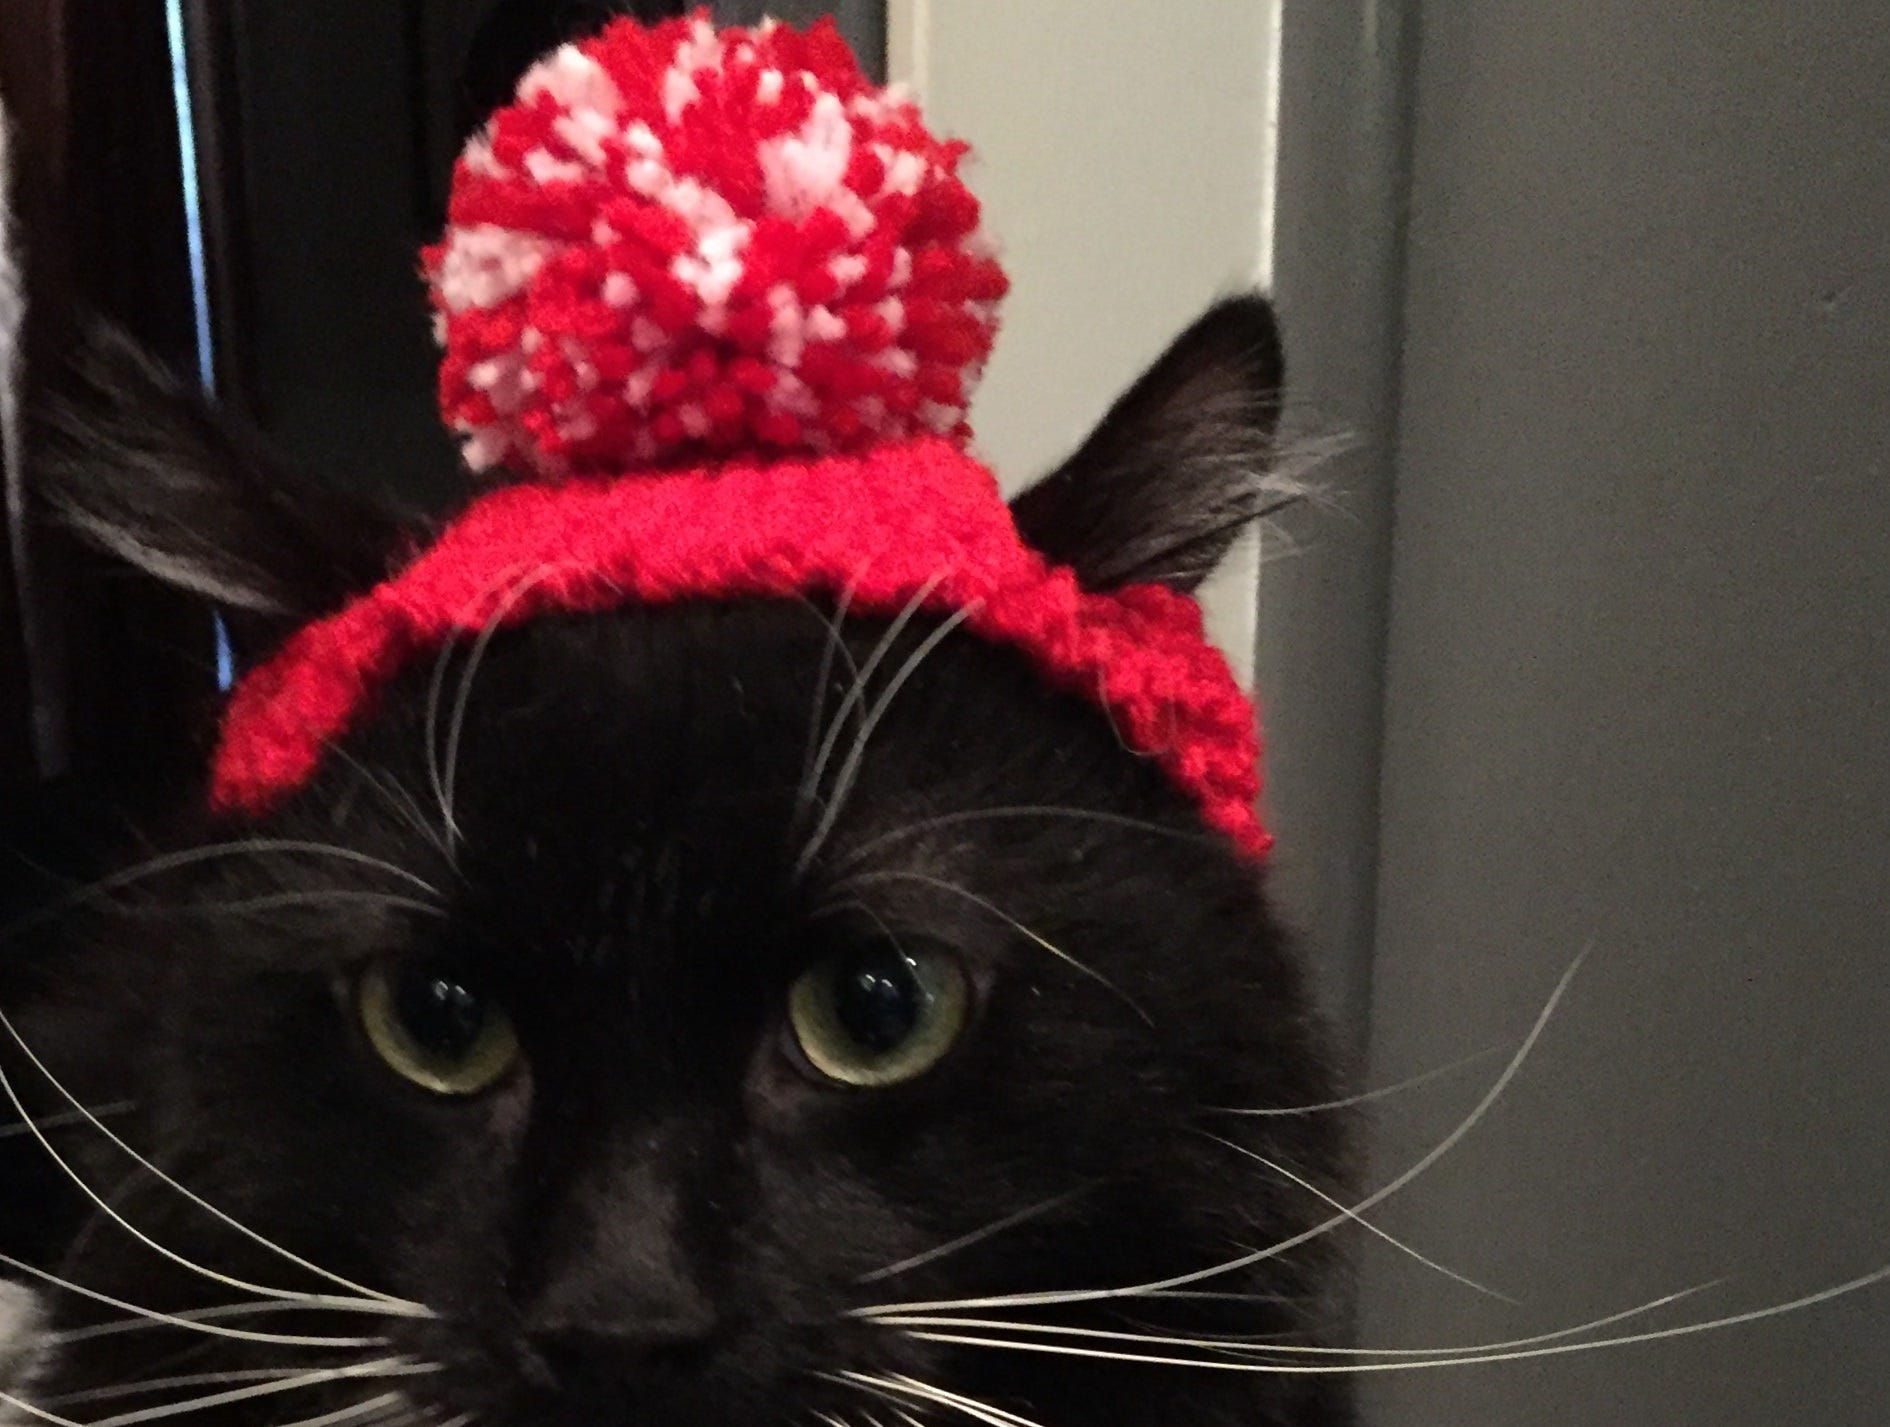 """Jennie Gresham knits """"Cat Hats"""" for friends, family and by request, asking only that recipients donate to the Maclean Animal Adoption Center in return.  Owners take photos and send their cats' """"comment"""" on the hat.  Filbert Finneous Figaro says, """"What has she put on me now?!"""""""